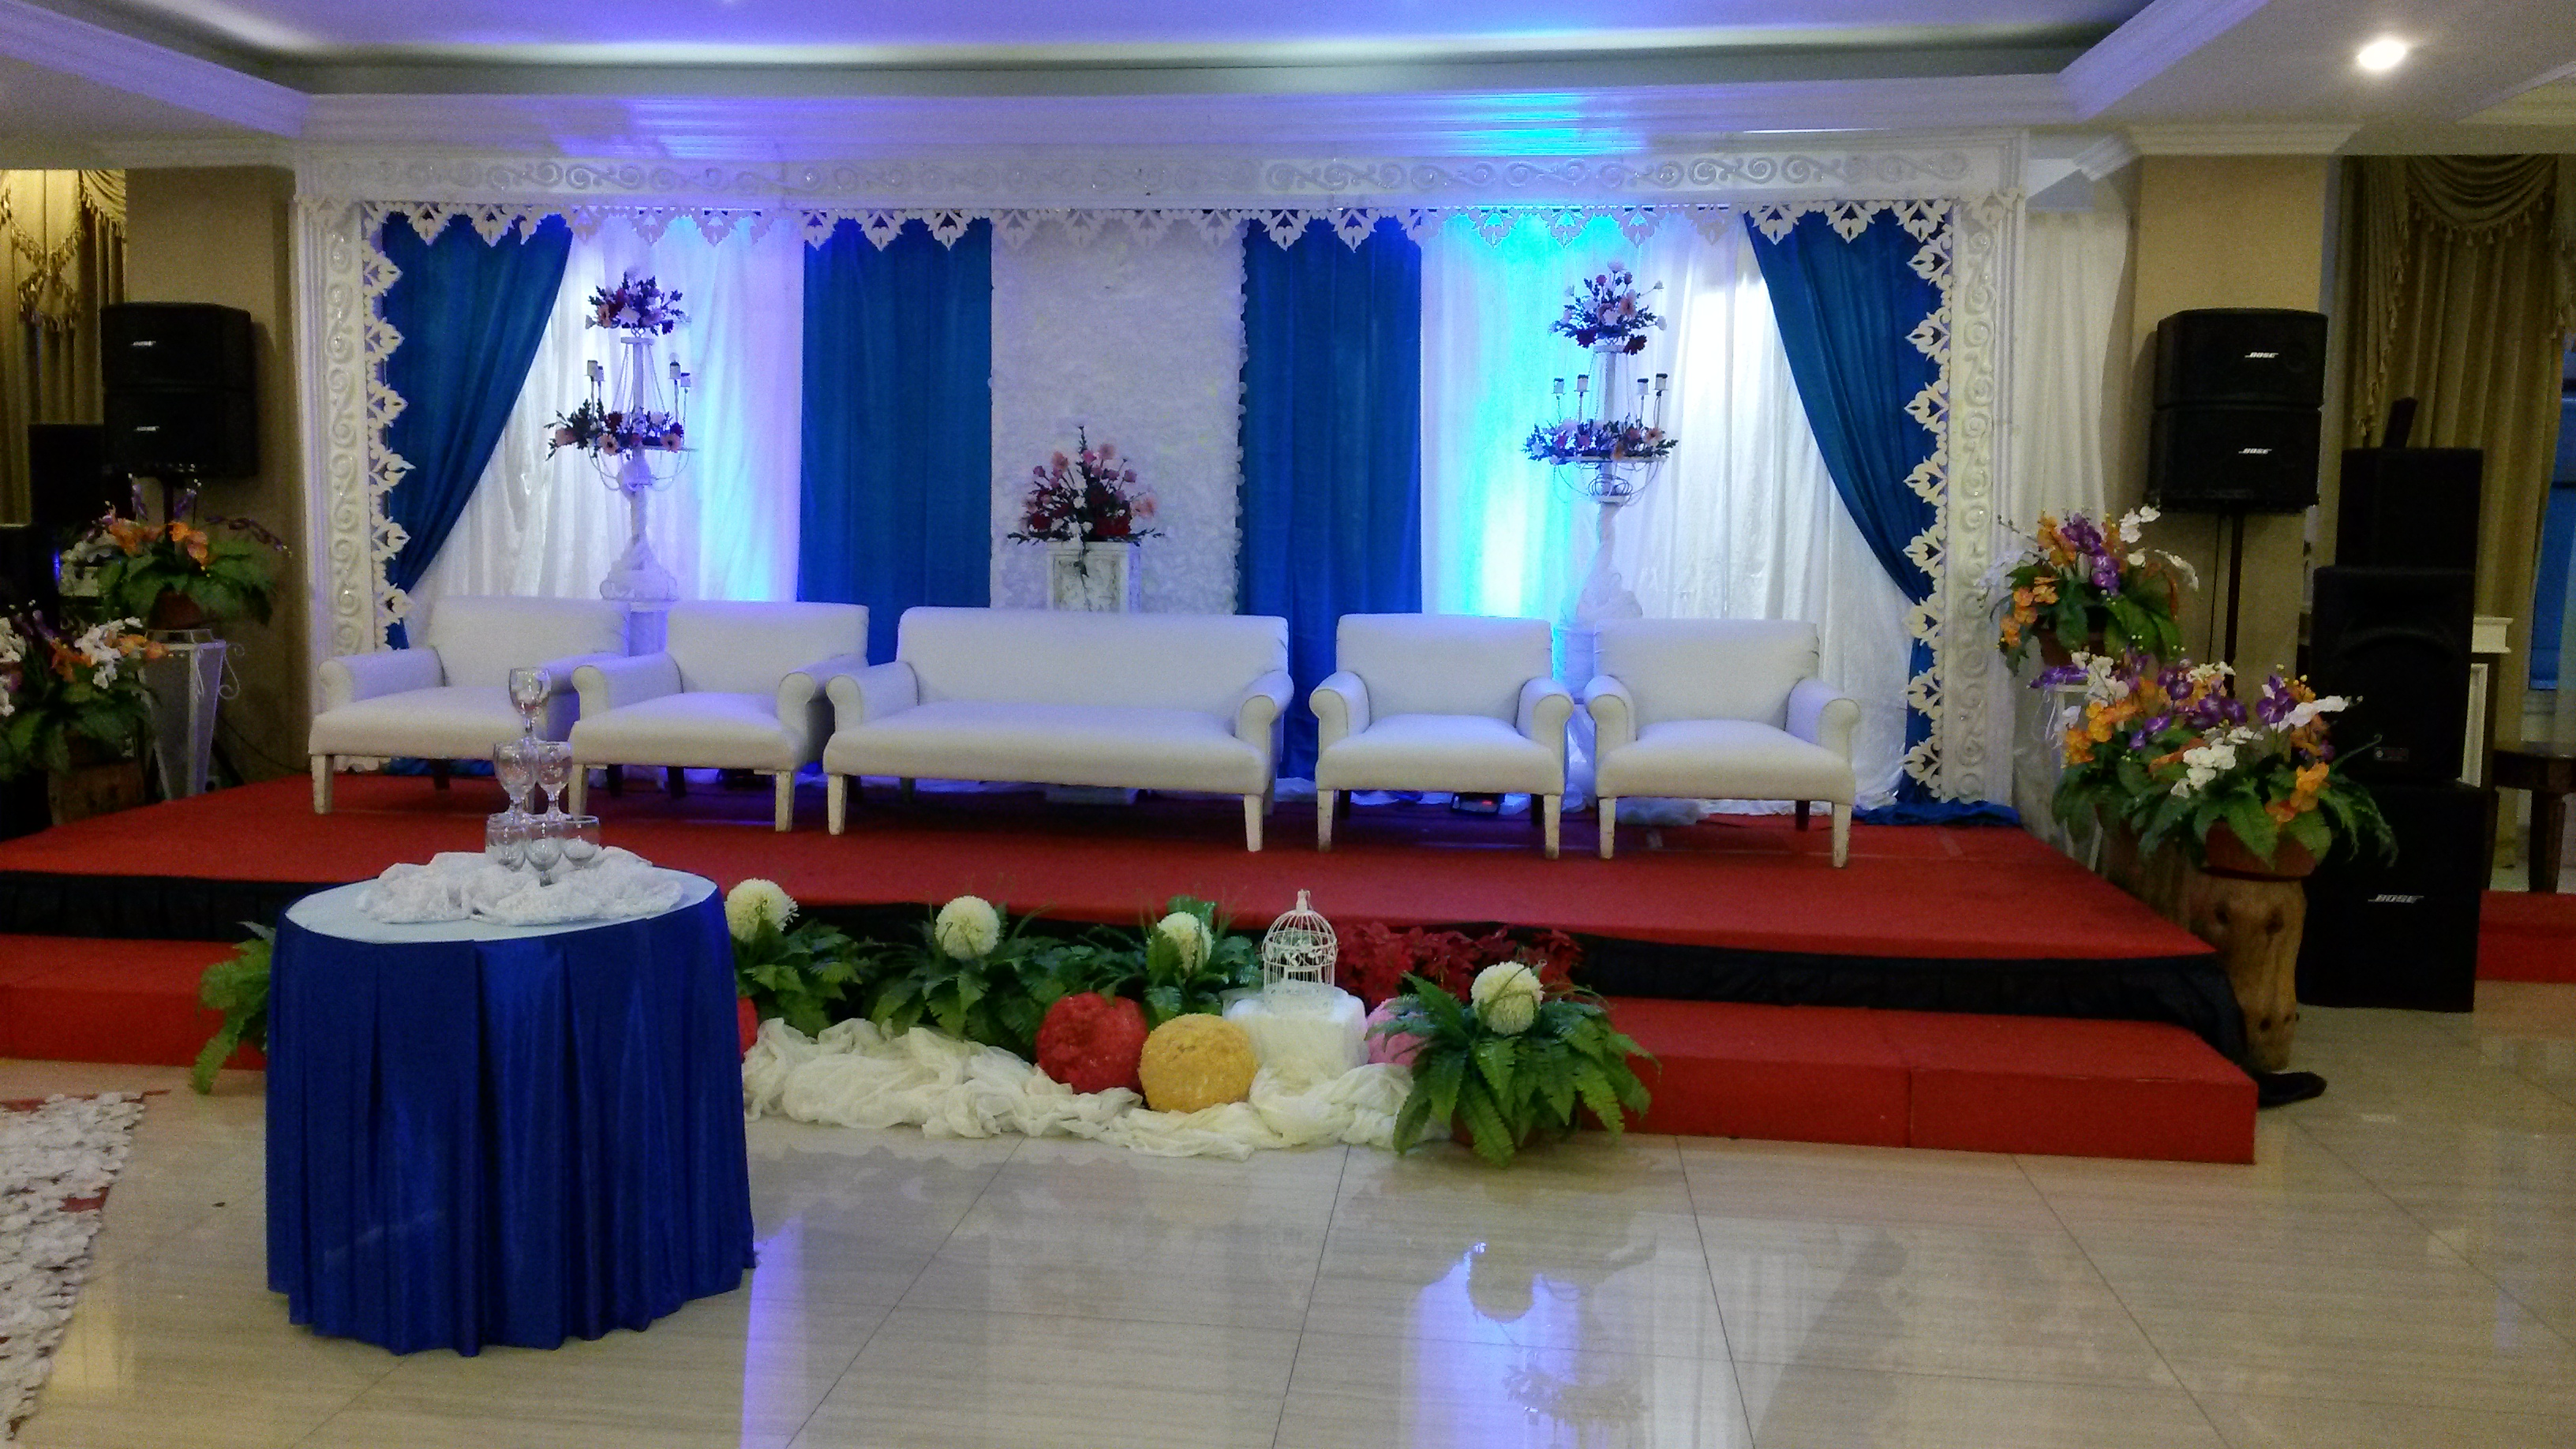 Paket wedding the agathon function centre 20141026163000 junglespirit Choice Image